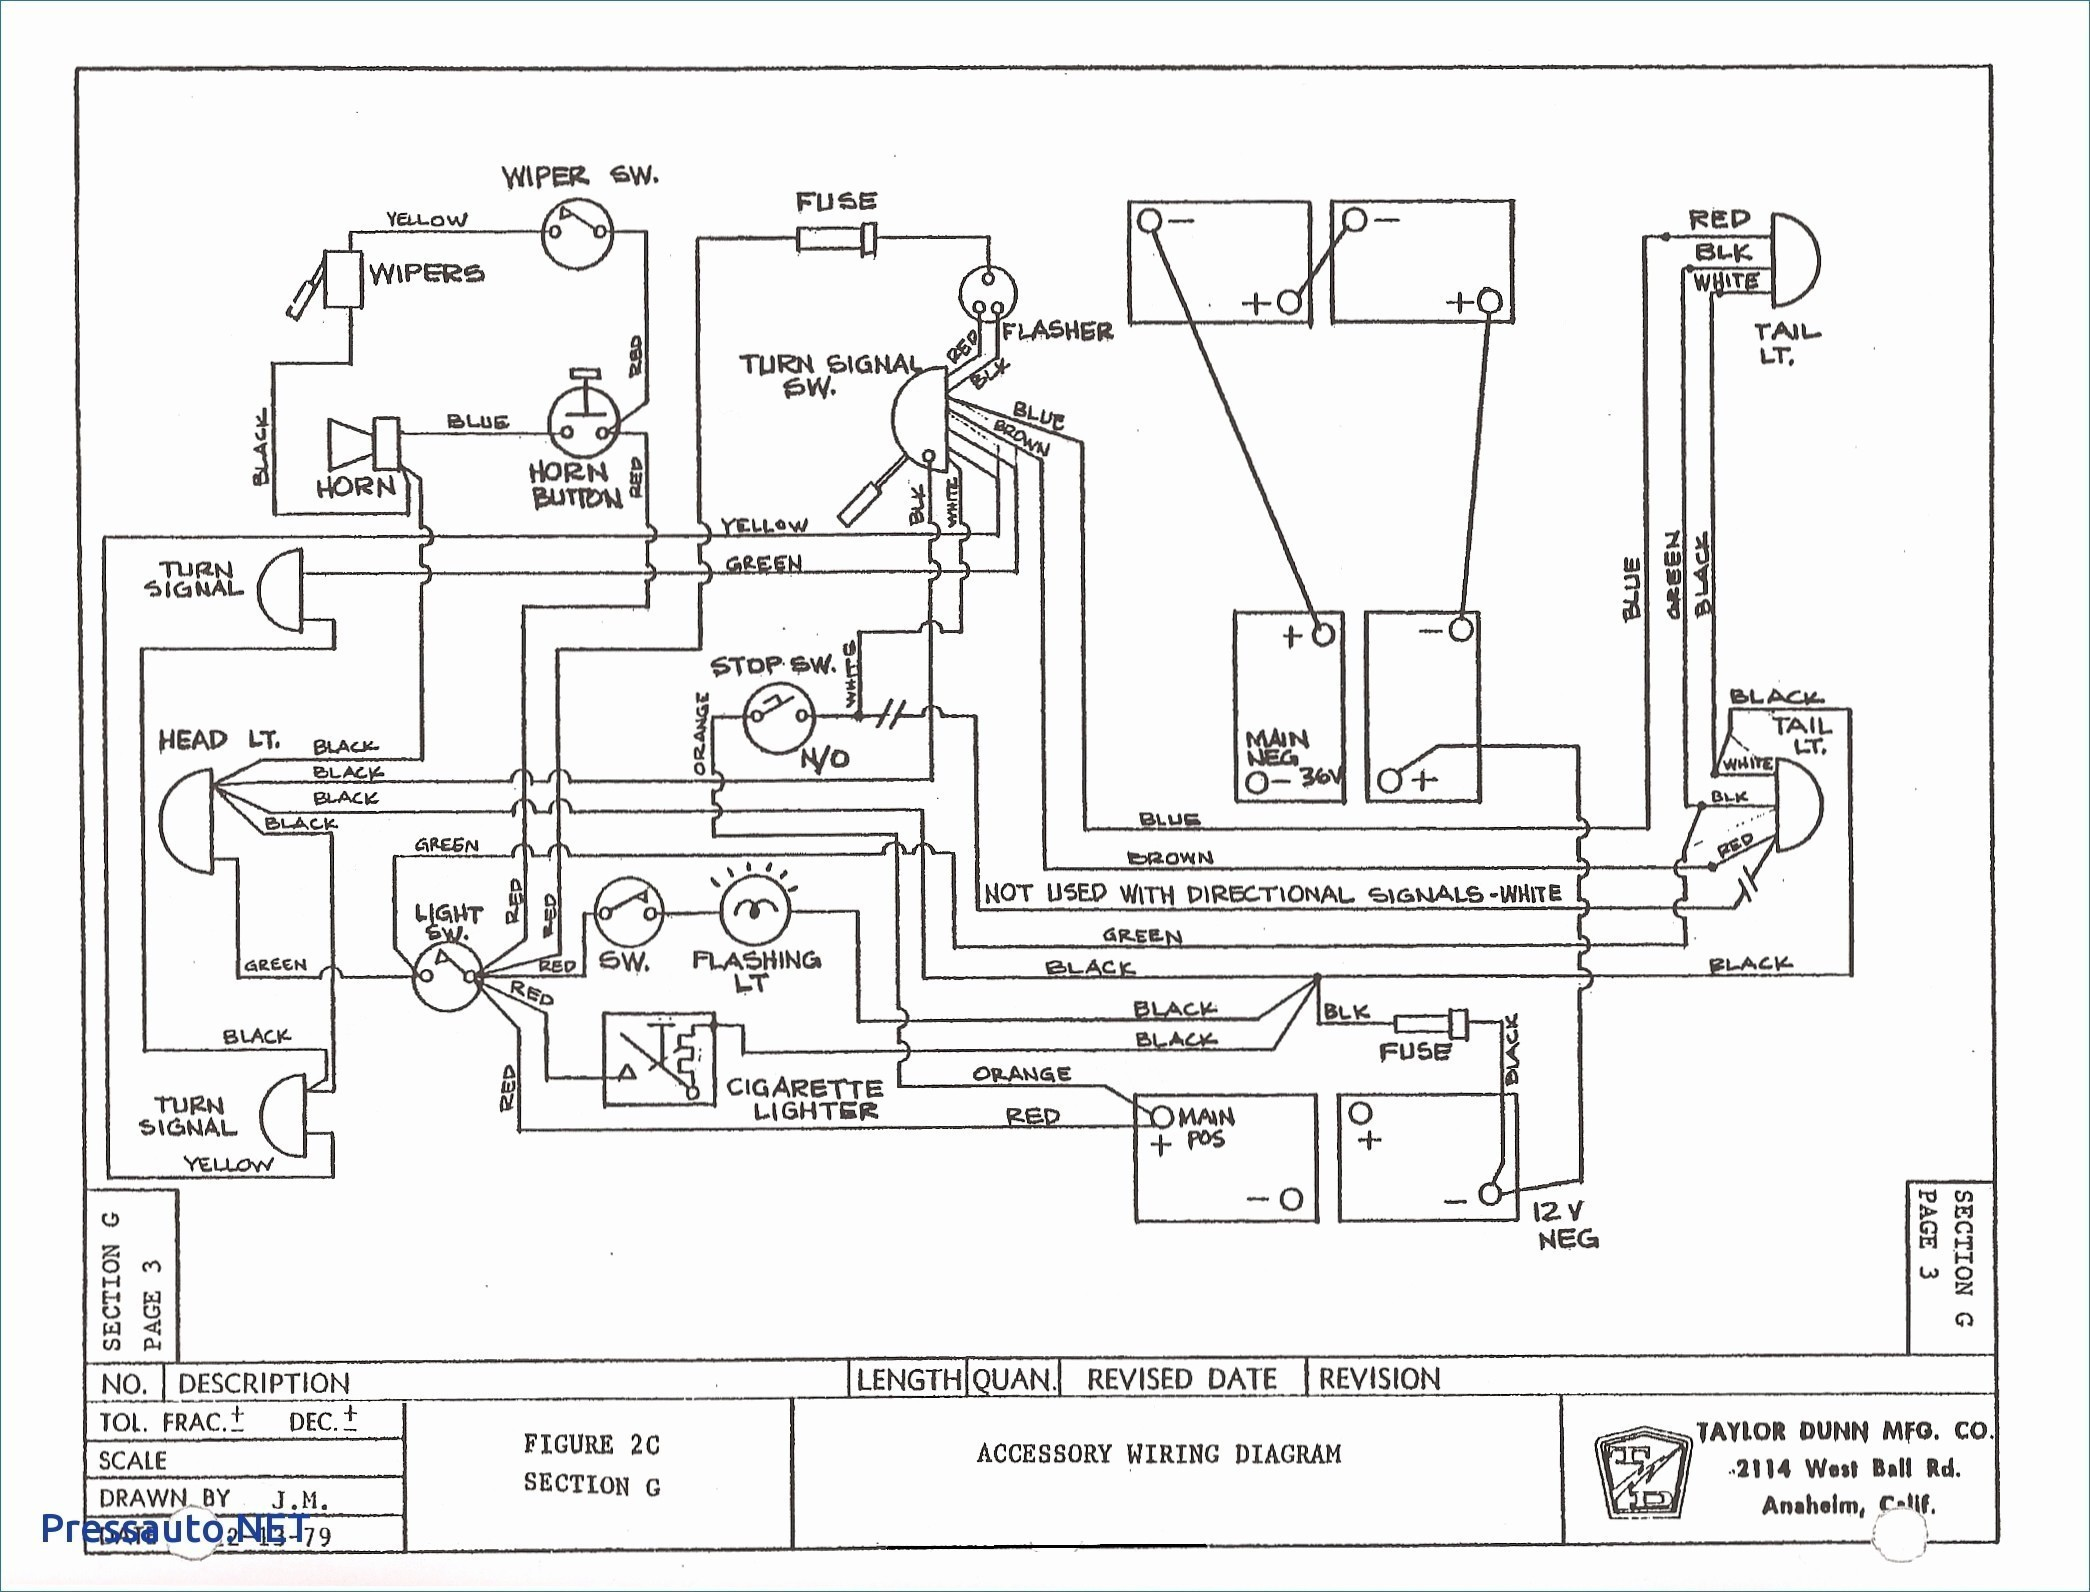 1992 Ez-go Wiring Diagram 591 Ez Go Golf Cart Parts Diagram